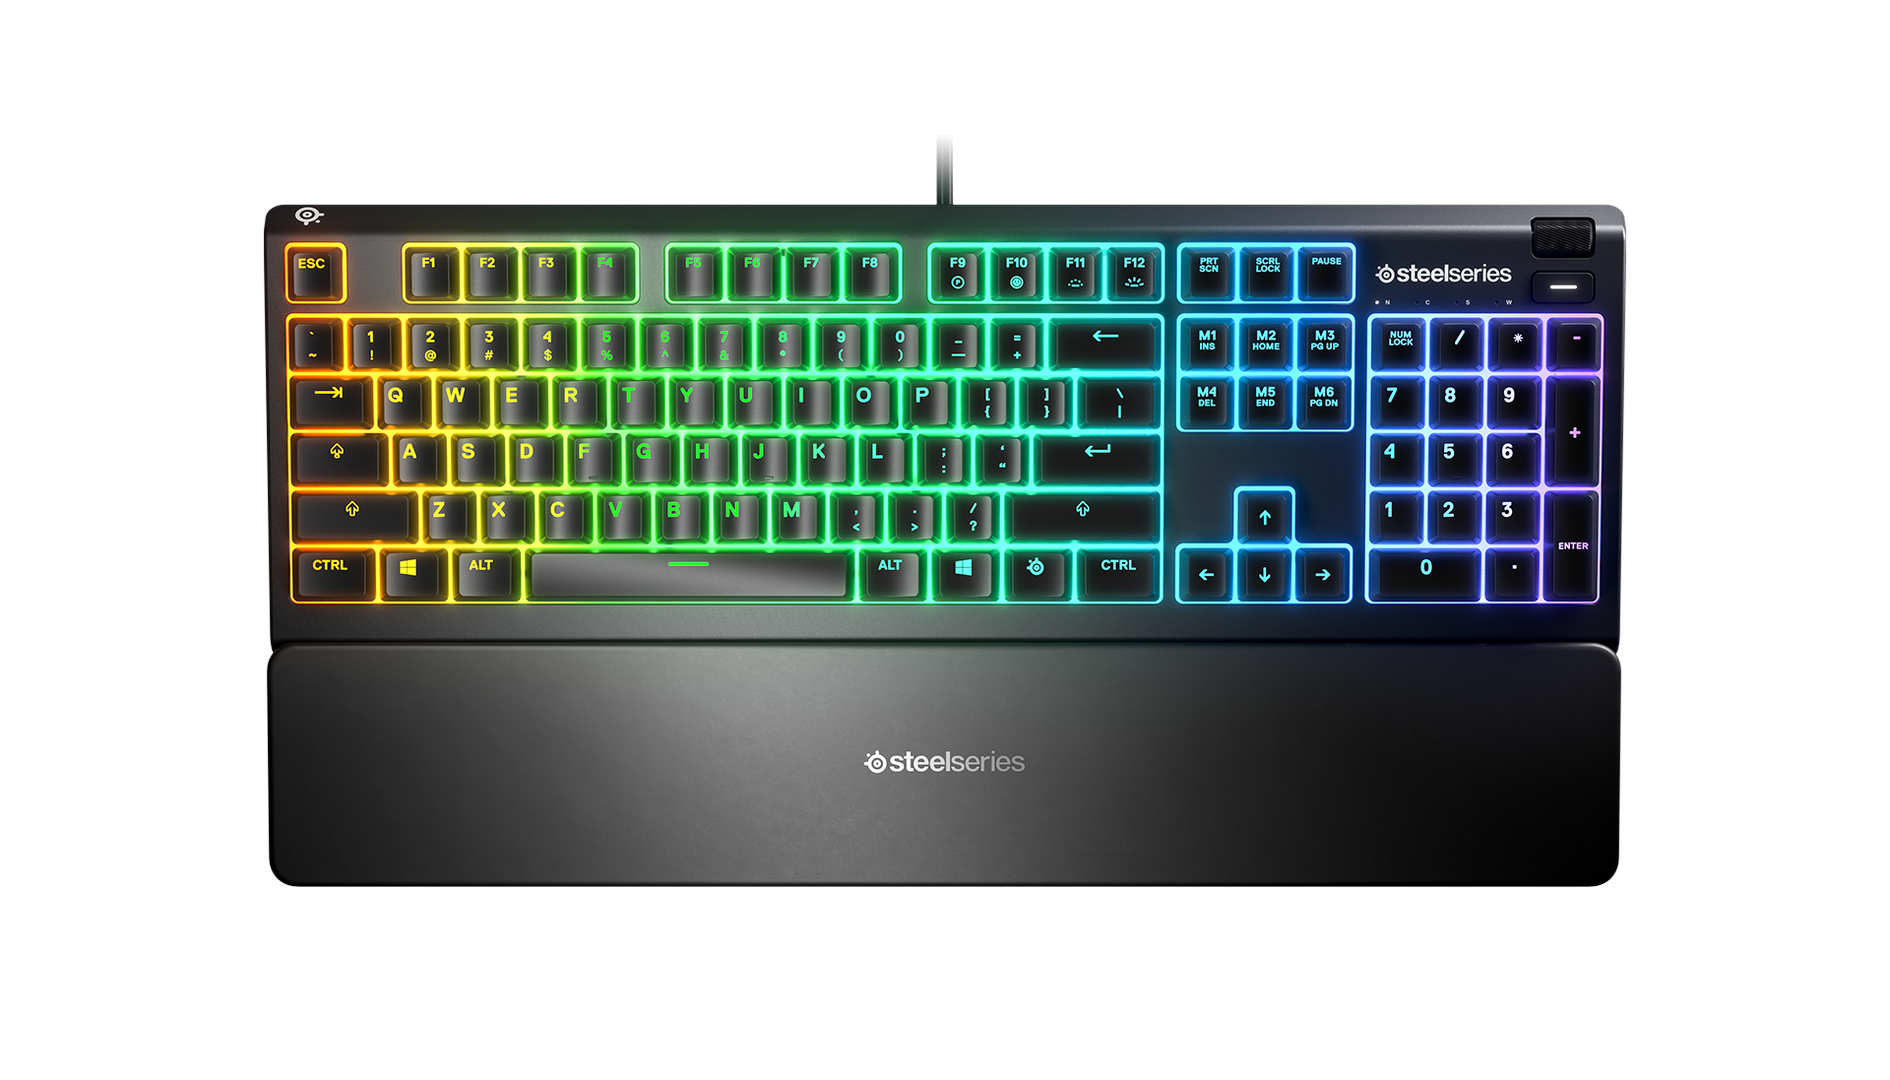 The Apex 3 keyboard lit up brilliantly with all its RGB goodness, which looks pretty awesome if we say so ourselves.